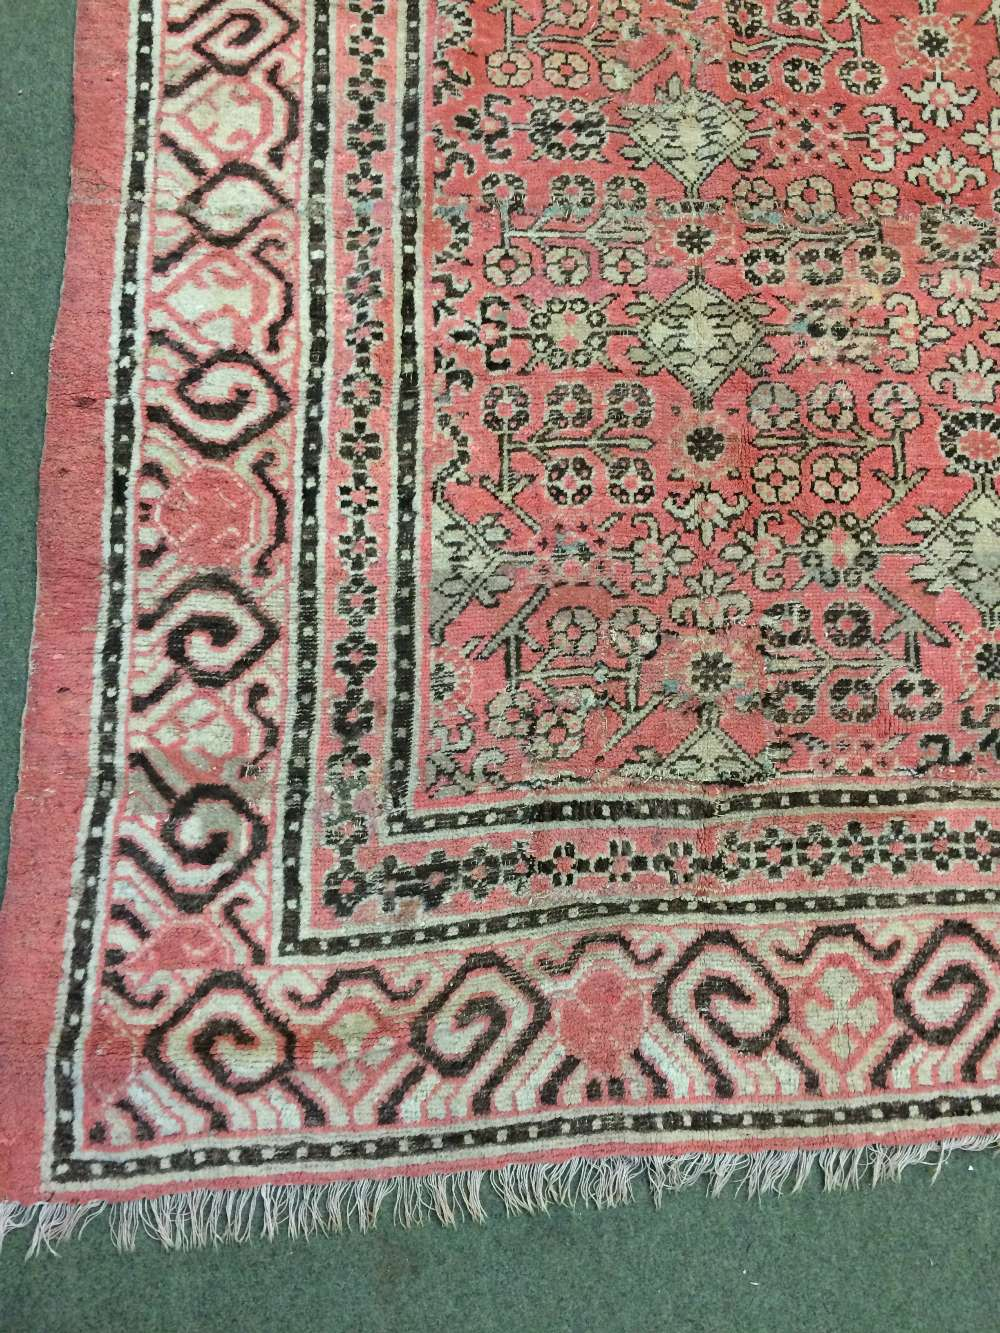 Lot 710 - Antique Samarkand carpet East Turkestan circa 1900 2.82 X 2.48m